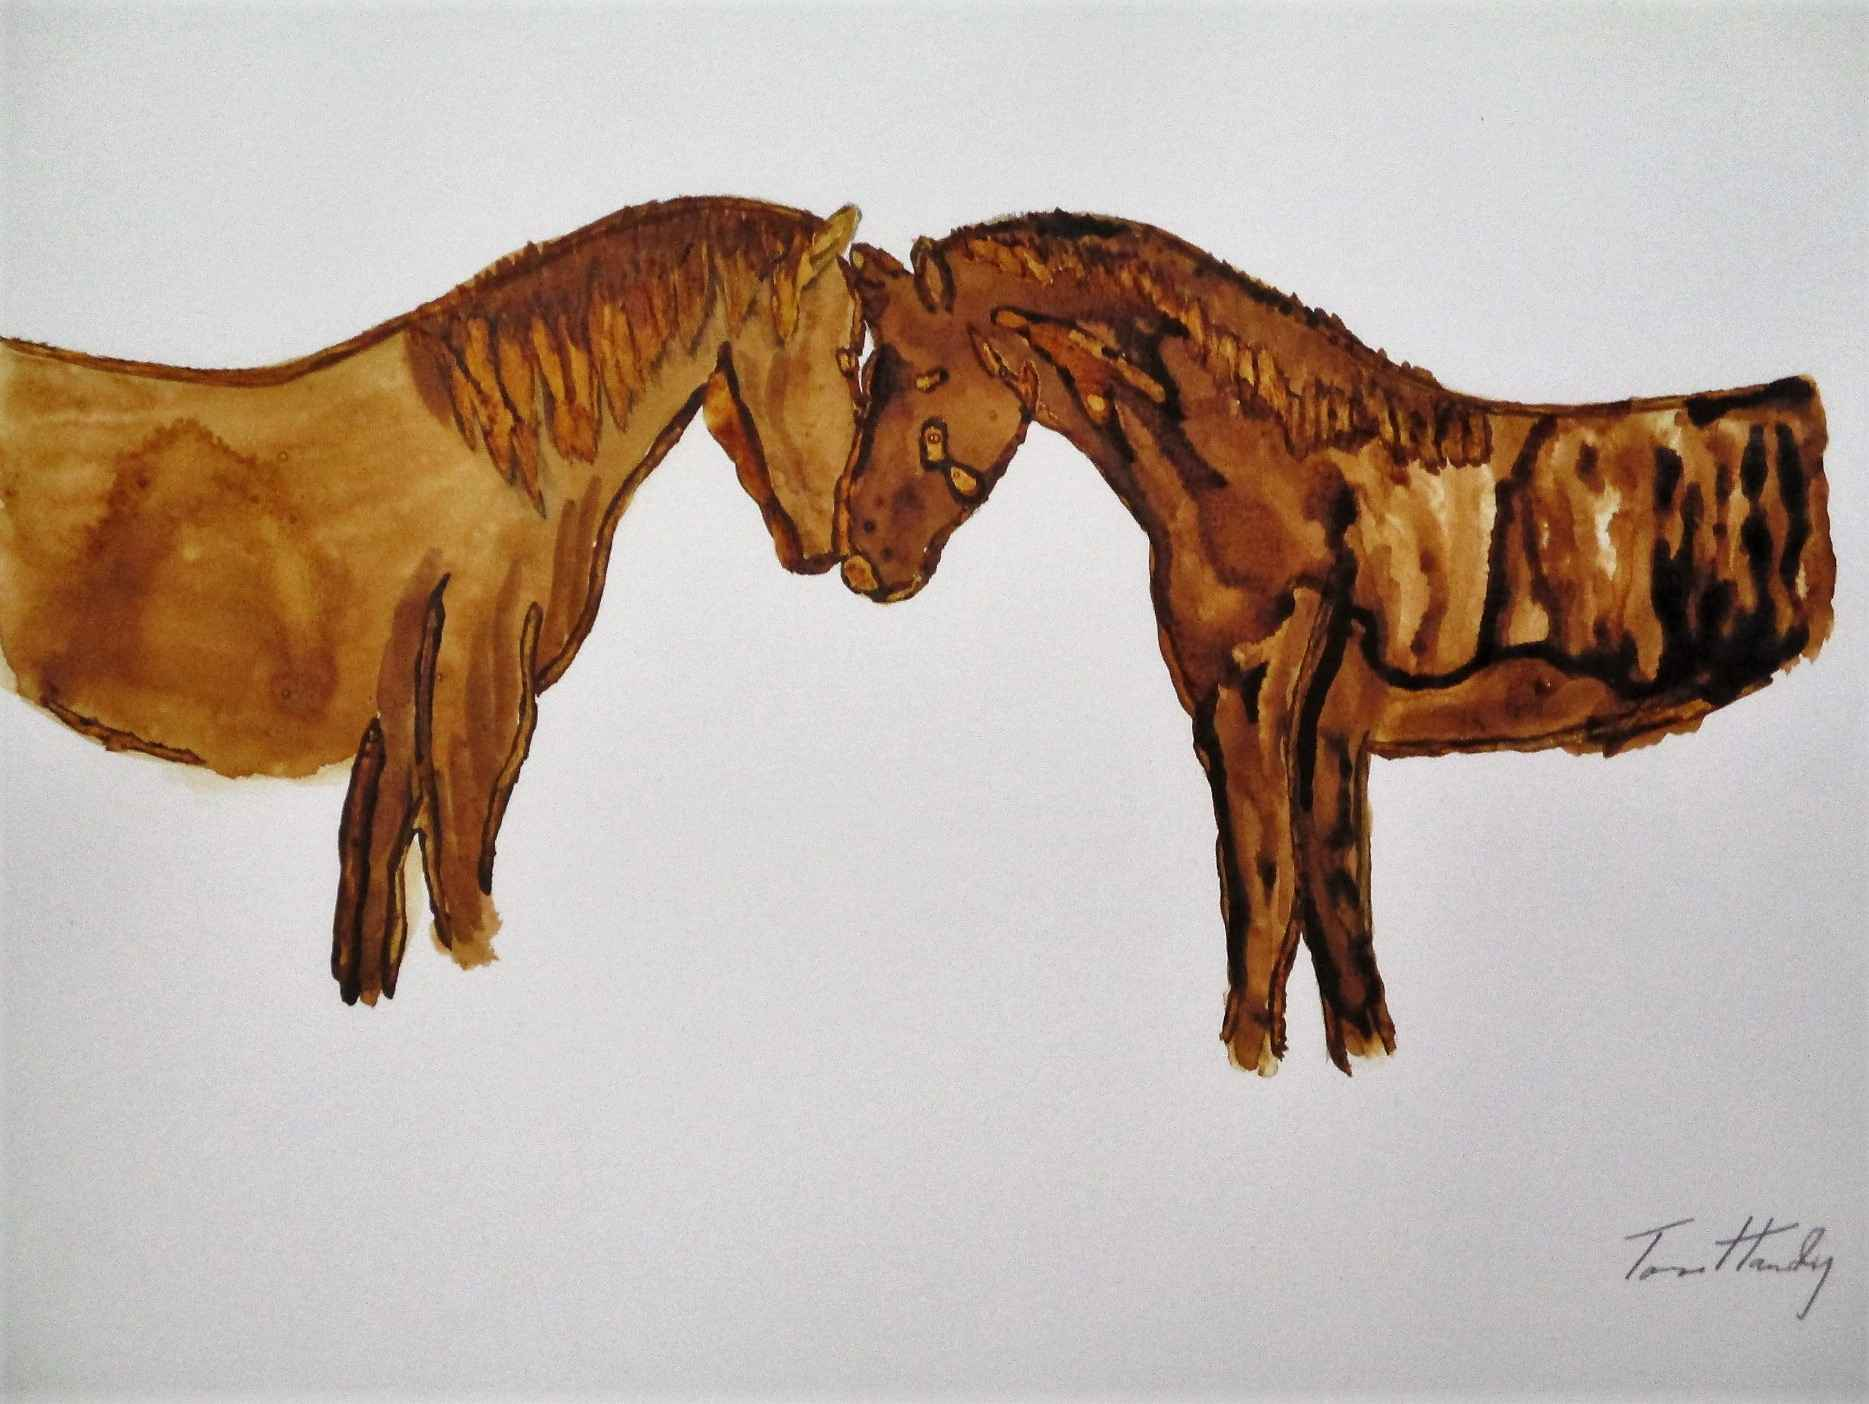 Unknown (two horses) by  Tom Hardy - Masterpiece Online